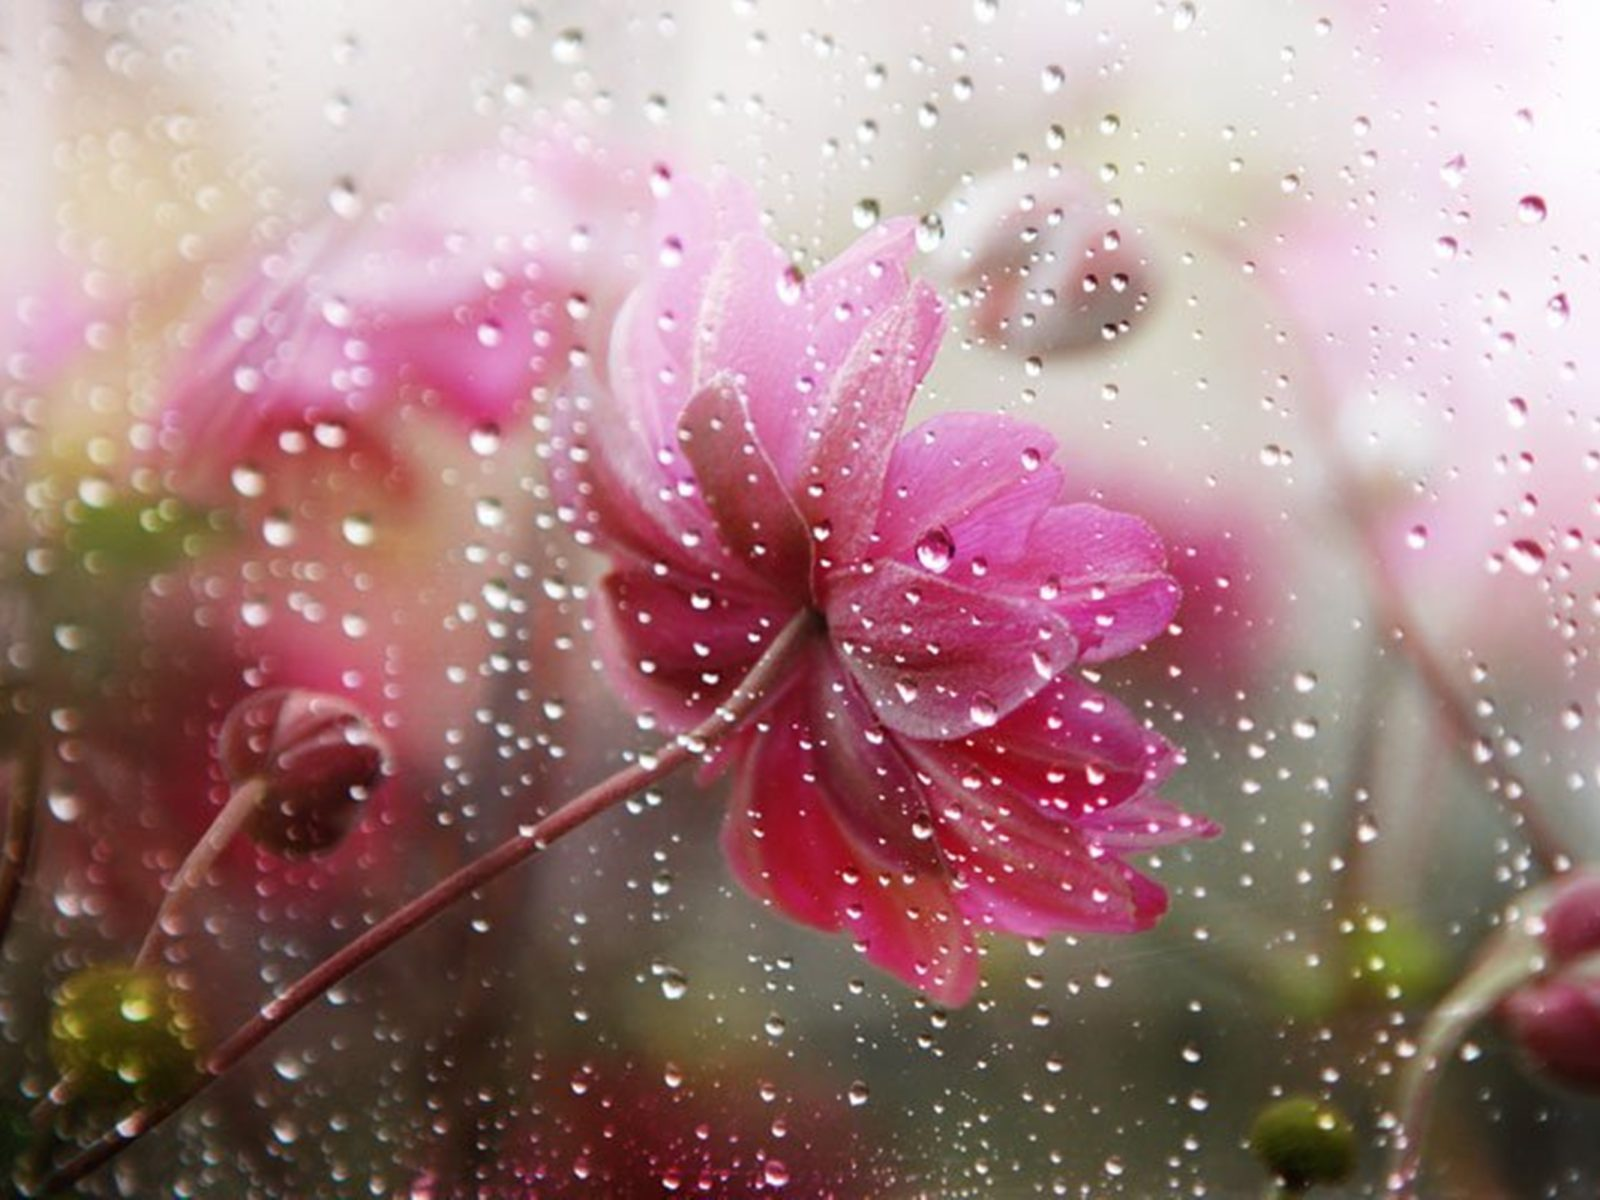 Cars Iphone 7 Wallpaper Falling Rain In Flower Flowers Under The Rain